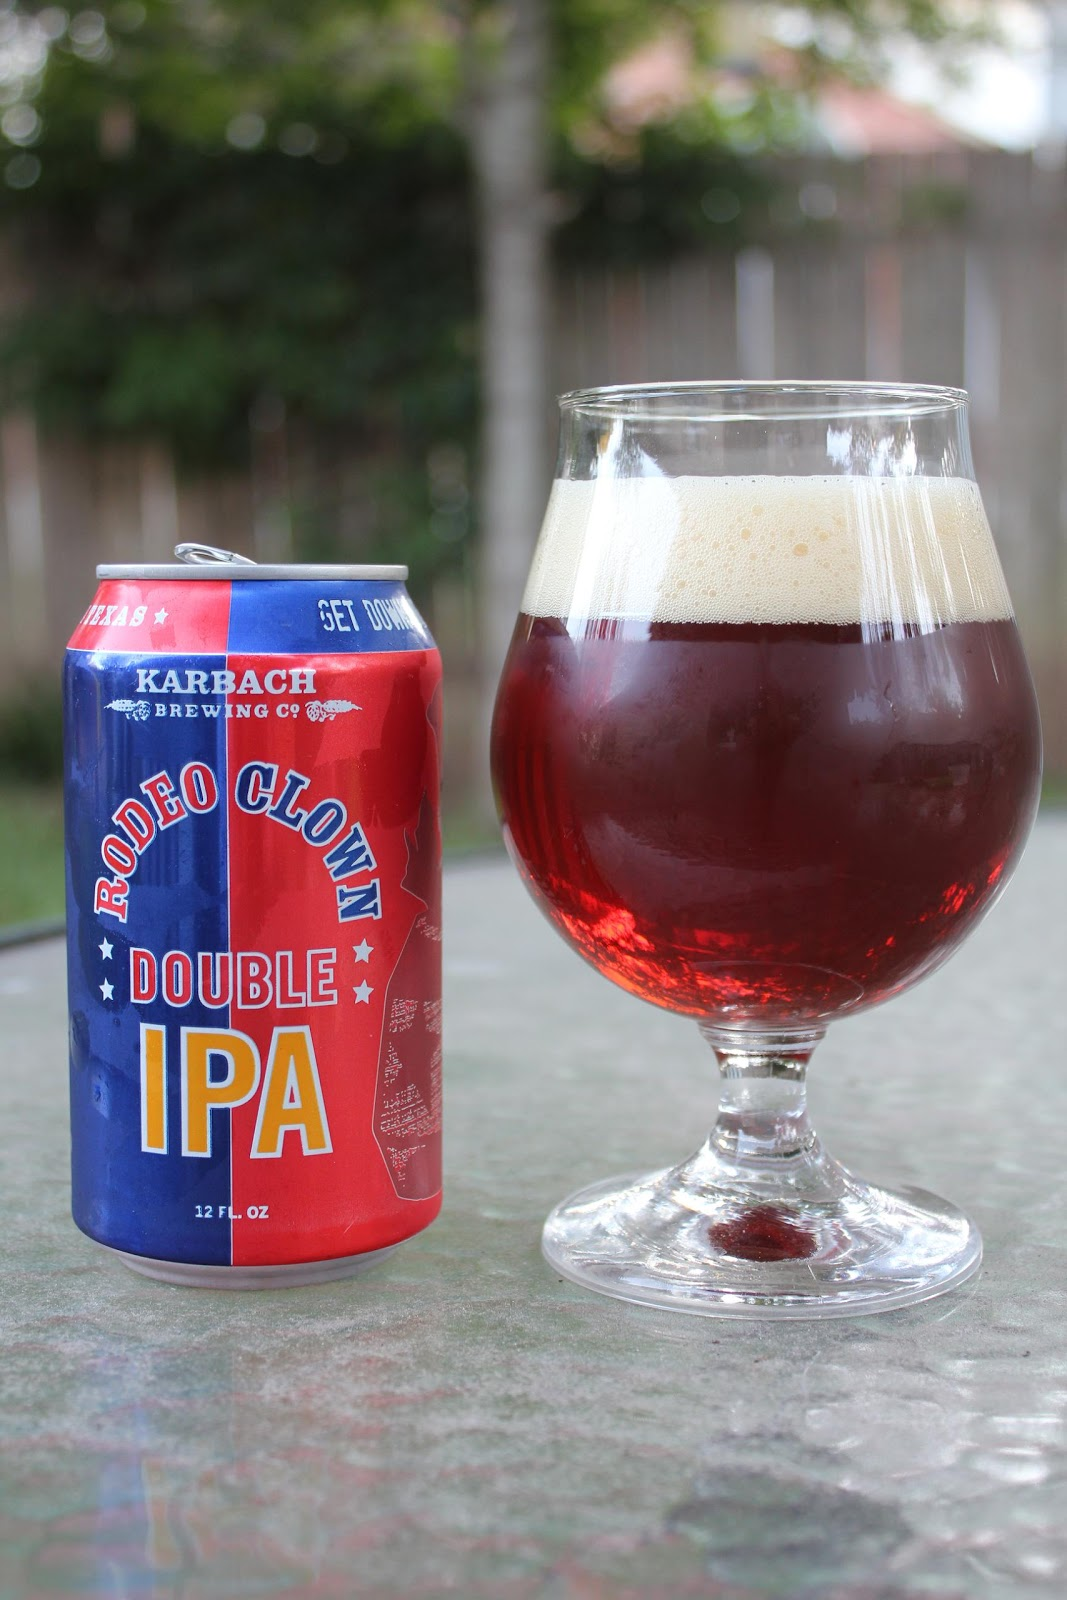 The Br 220 The Br 252 Rev 252 Karbach Rodeo Clown Double Ipa